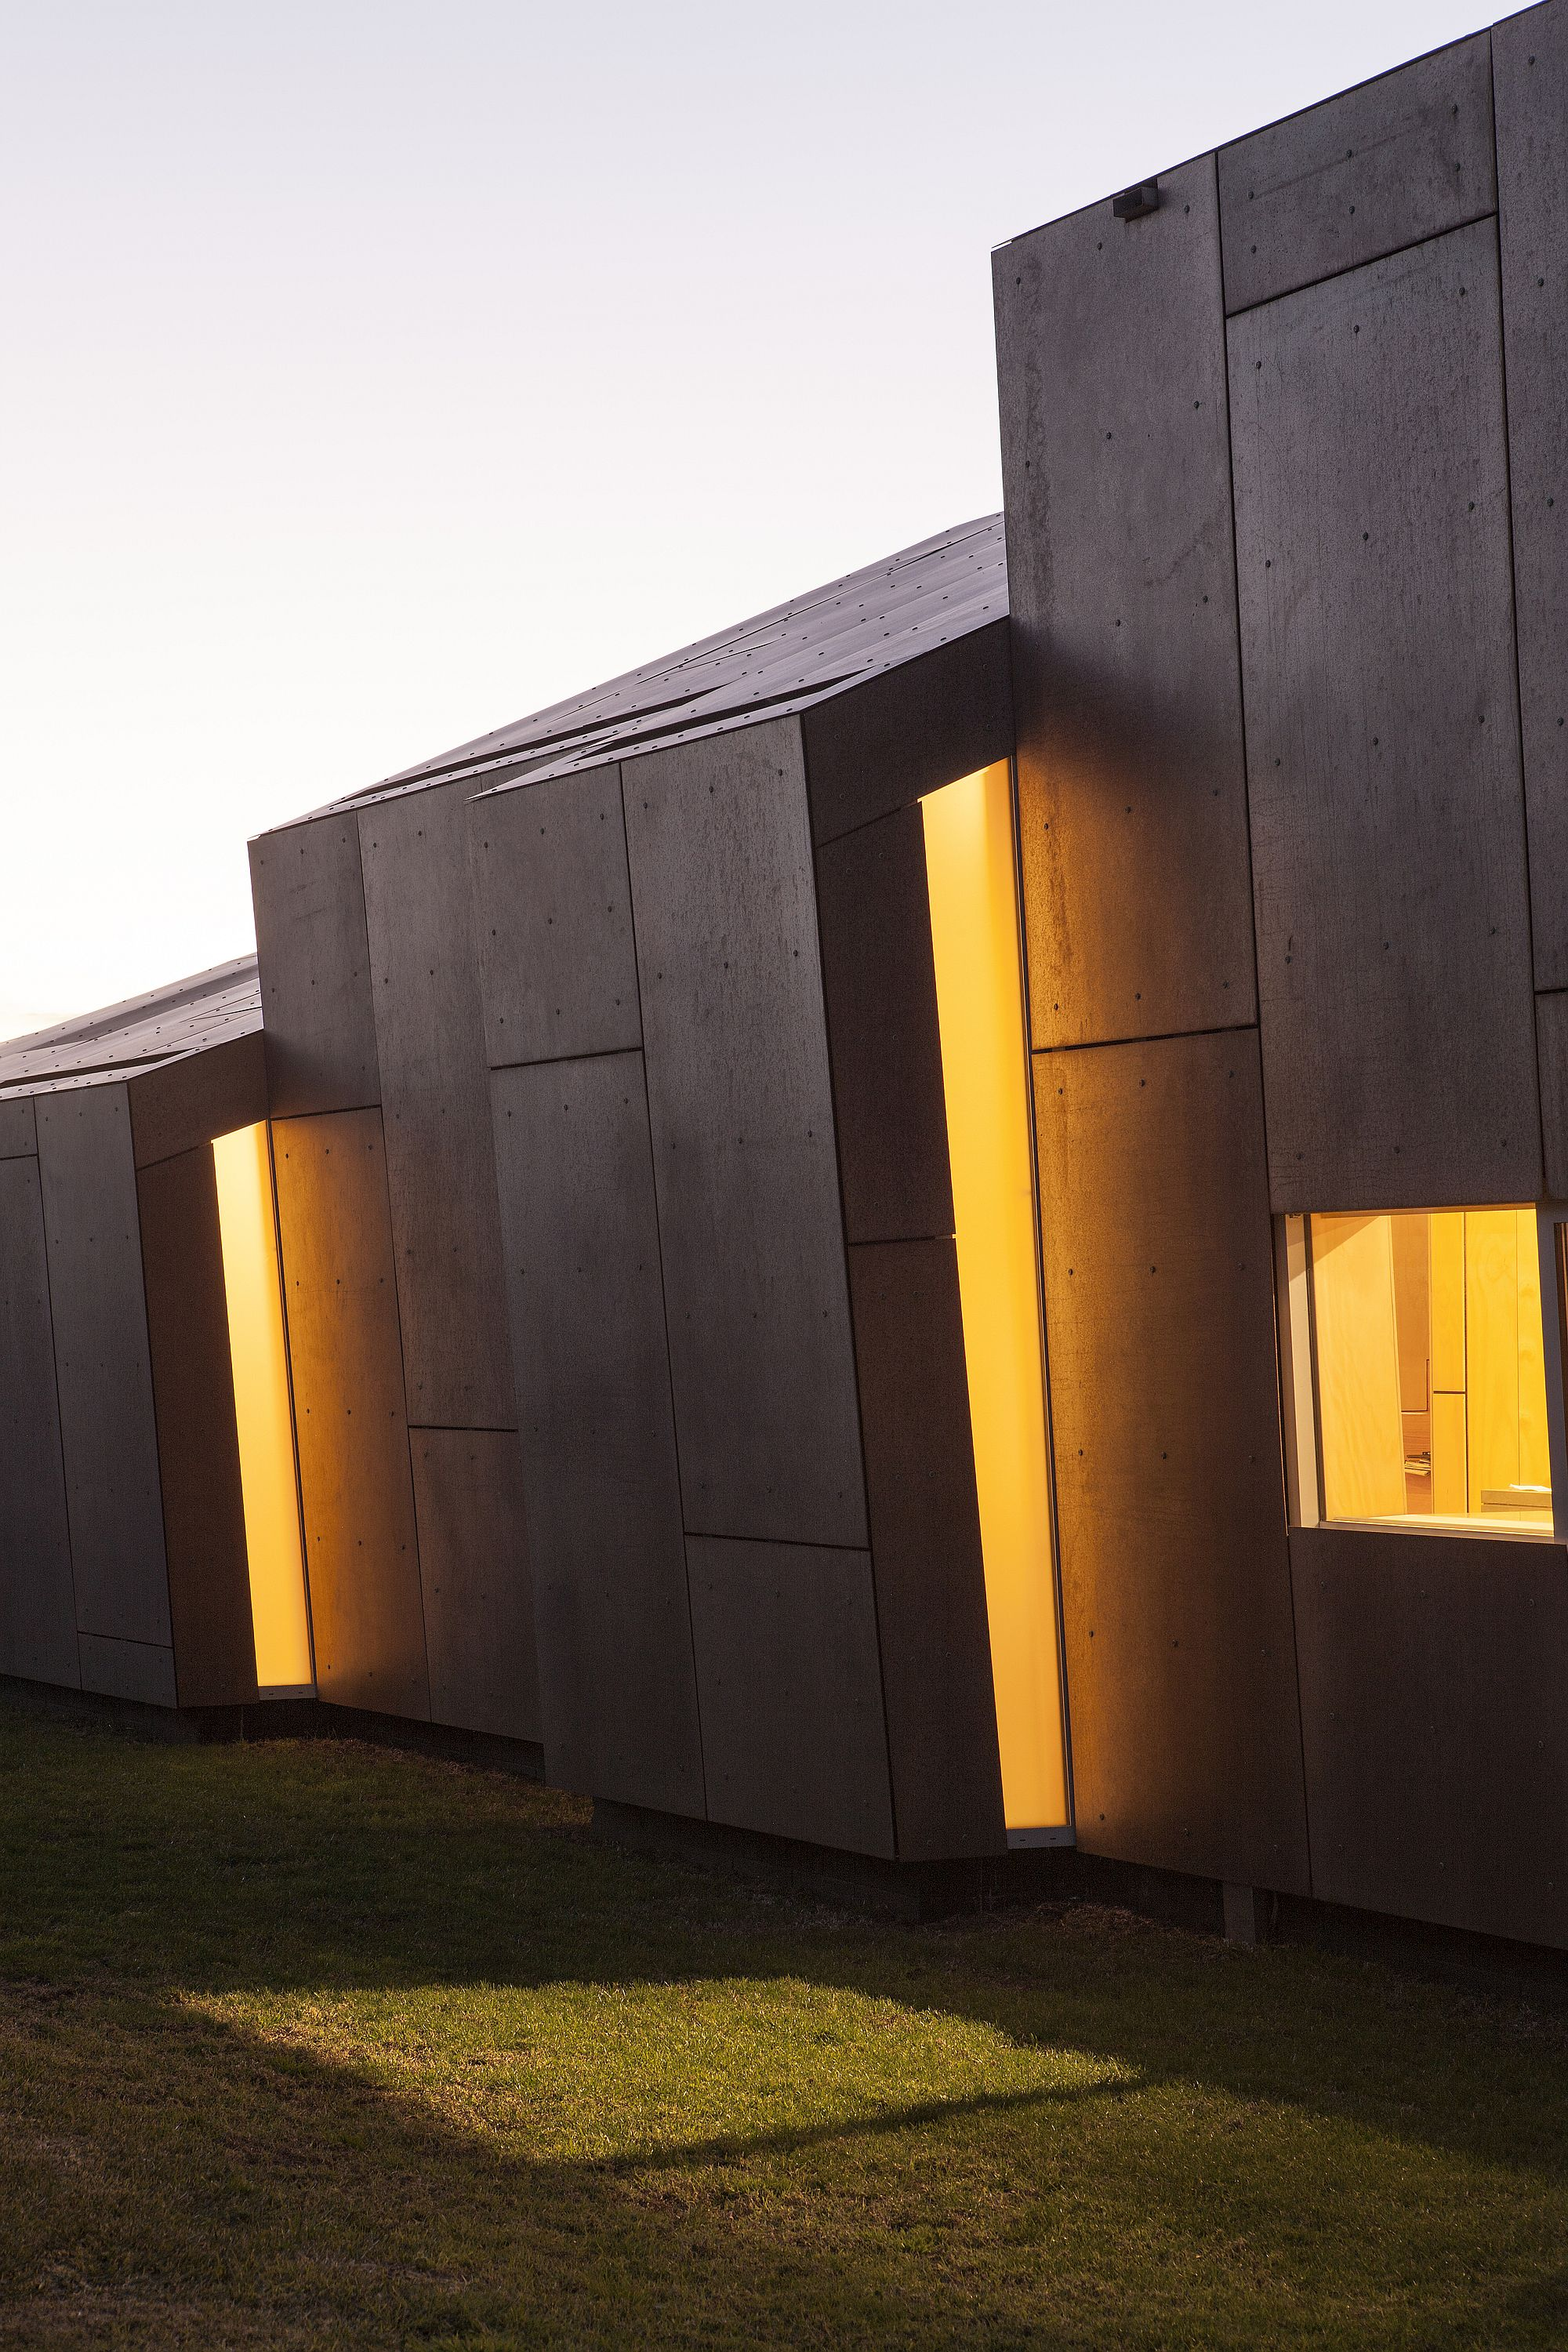 Lighting brings another layer intrigue to the facade of the Fe304 House